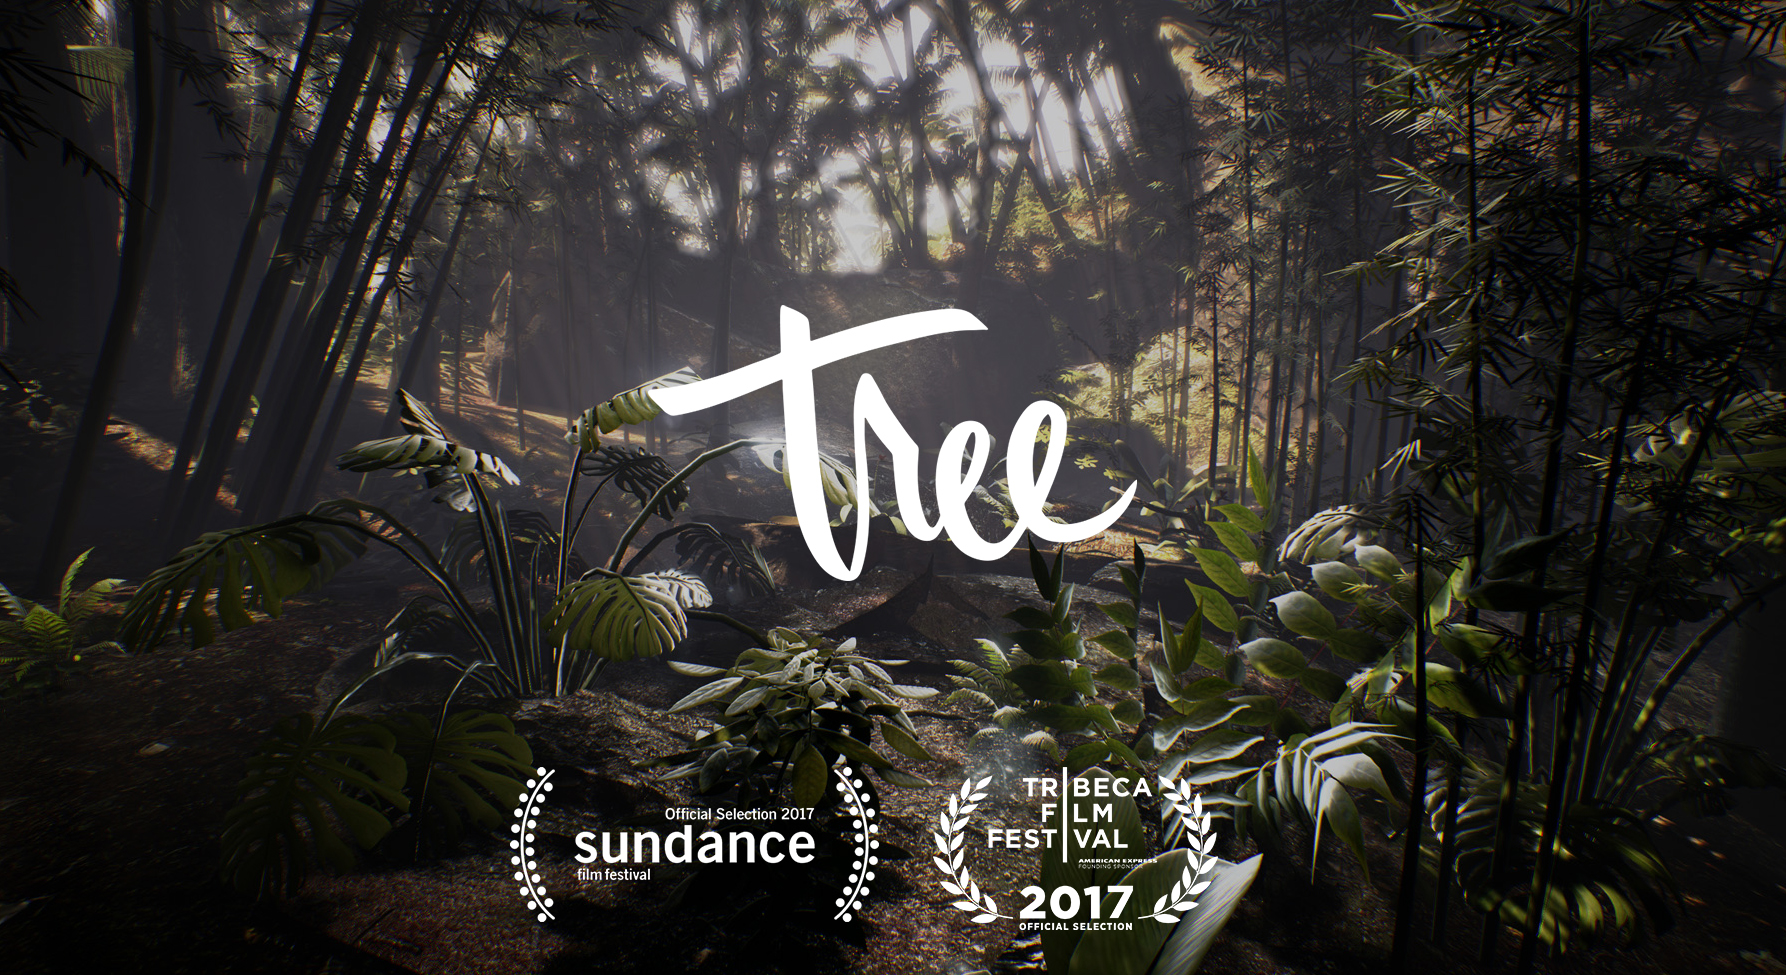 Tree, rendered by Jakob Steensen